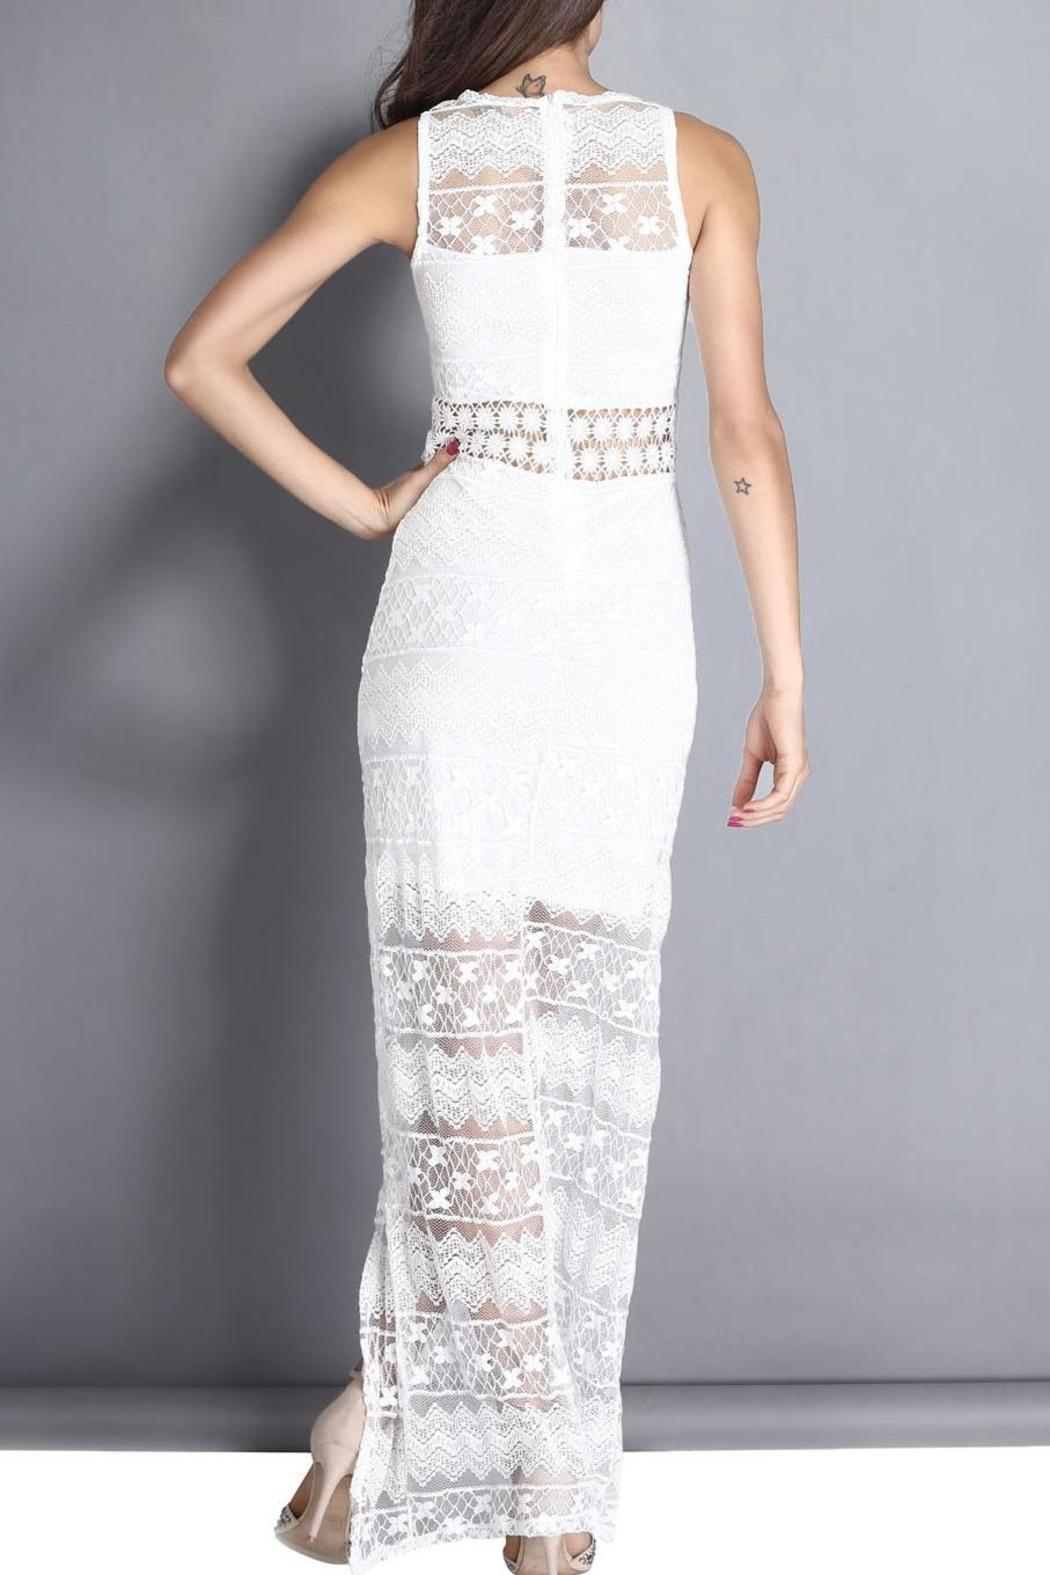 Adore Clothes & More White Lace Dress - Side Cropped Image